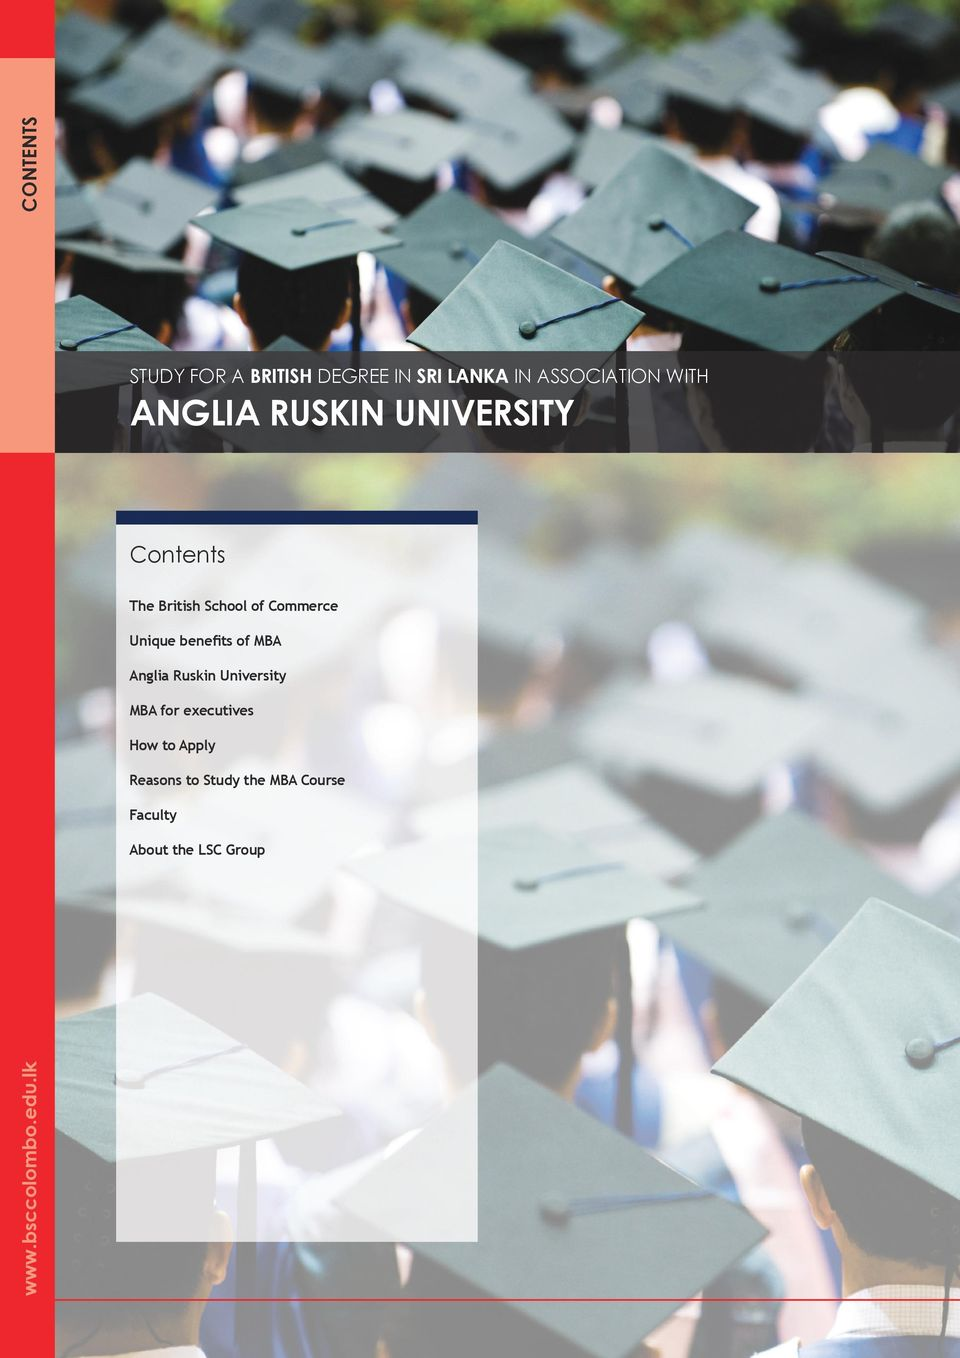 Unique benefits of MBA Anglia Ruskin University MBA for executives